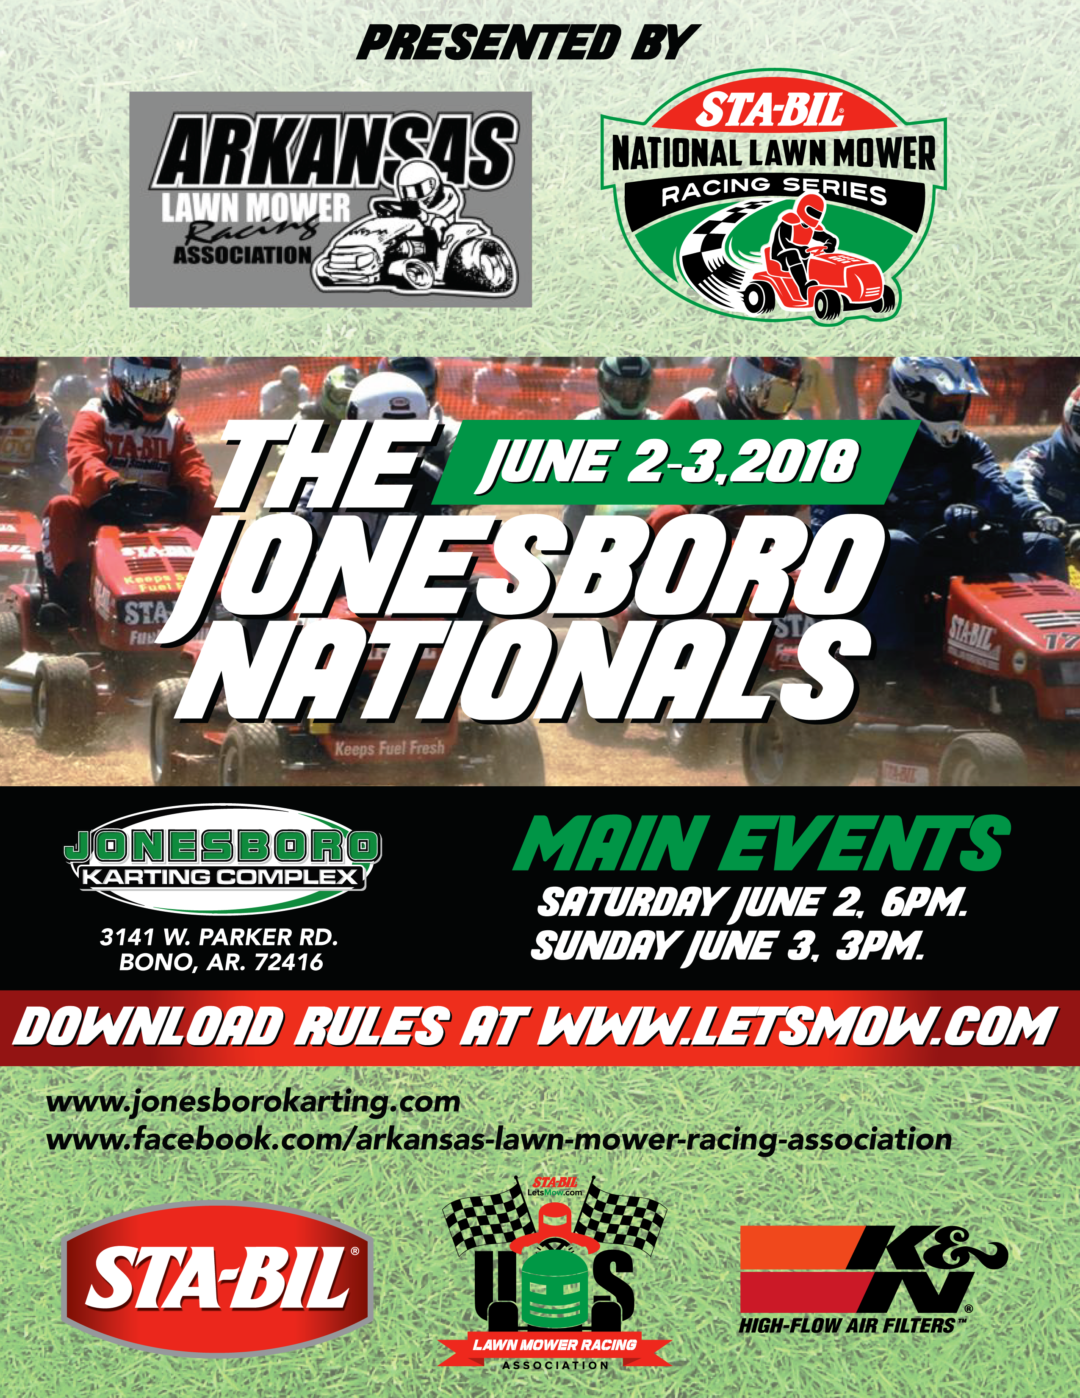 STA-BIL Series Returns to Jonesboro, AR, June 2-3